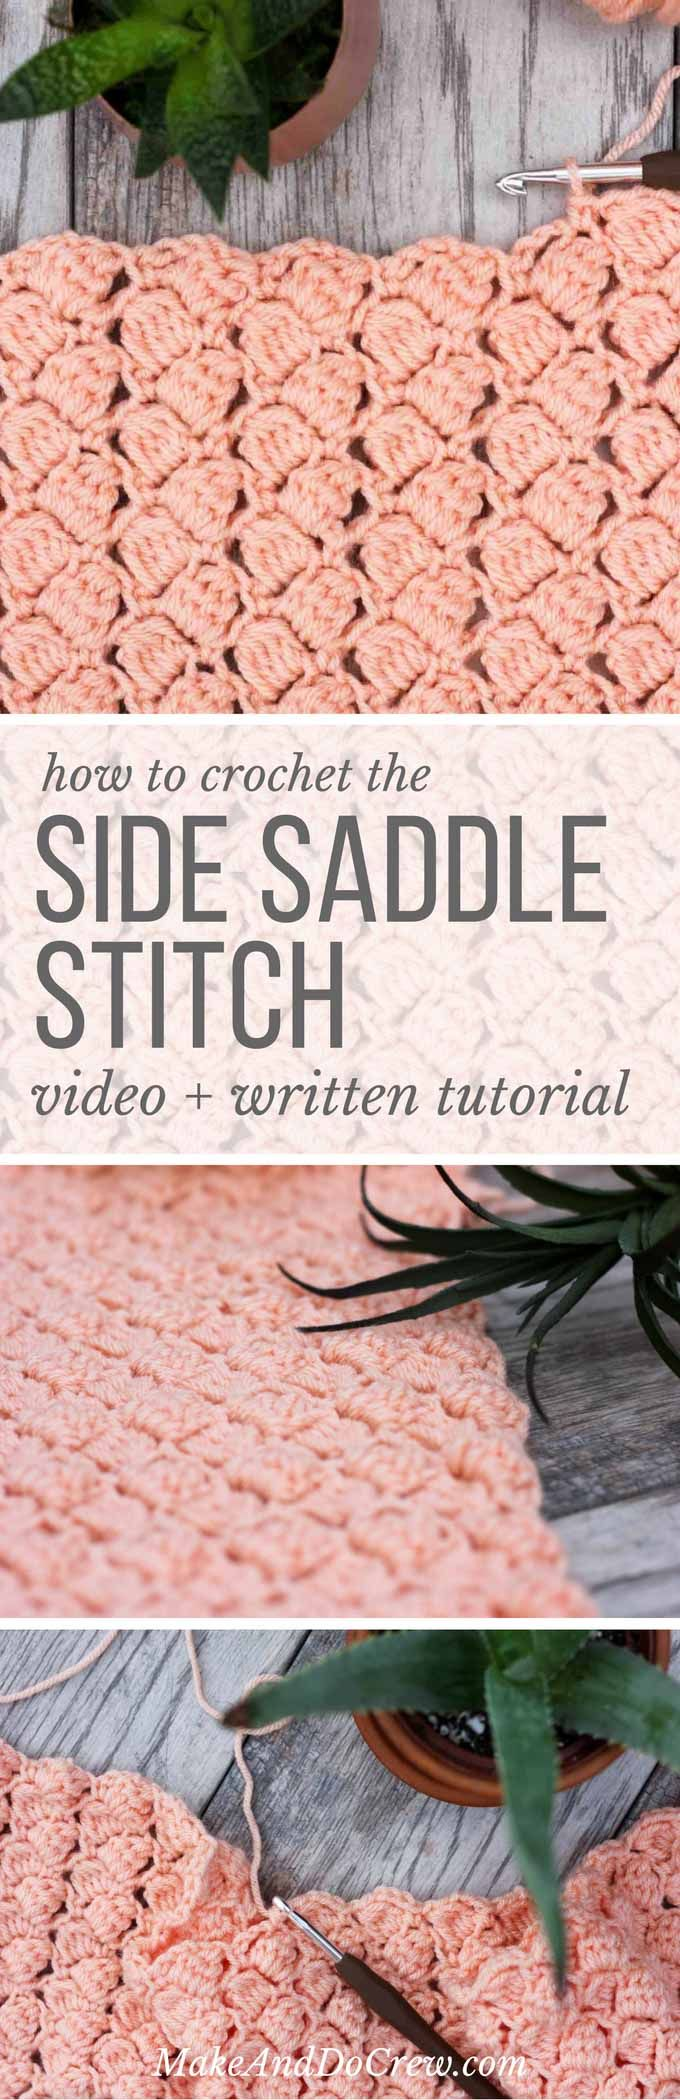 The side saddle crochet stitch has a lovely, repetitive look that is both airy and substantial at the same time. Perfect stitch to use in a crochet afghan or throw. Check out this video tutorial to learn how to do it step-by-step!